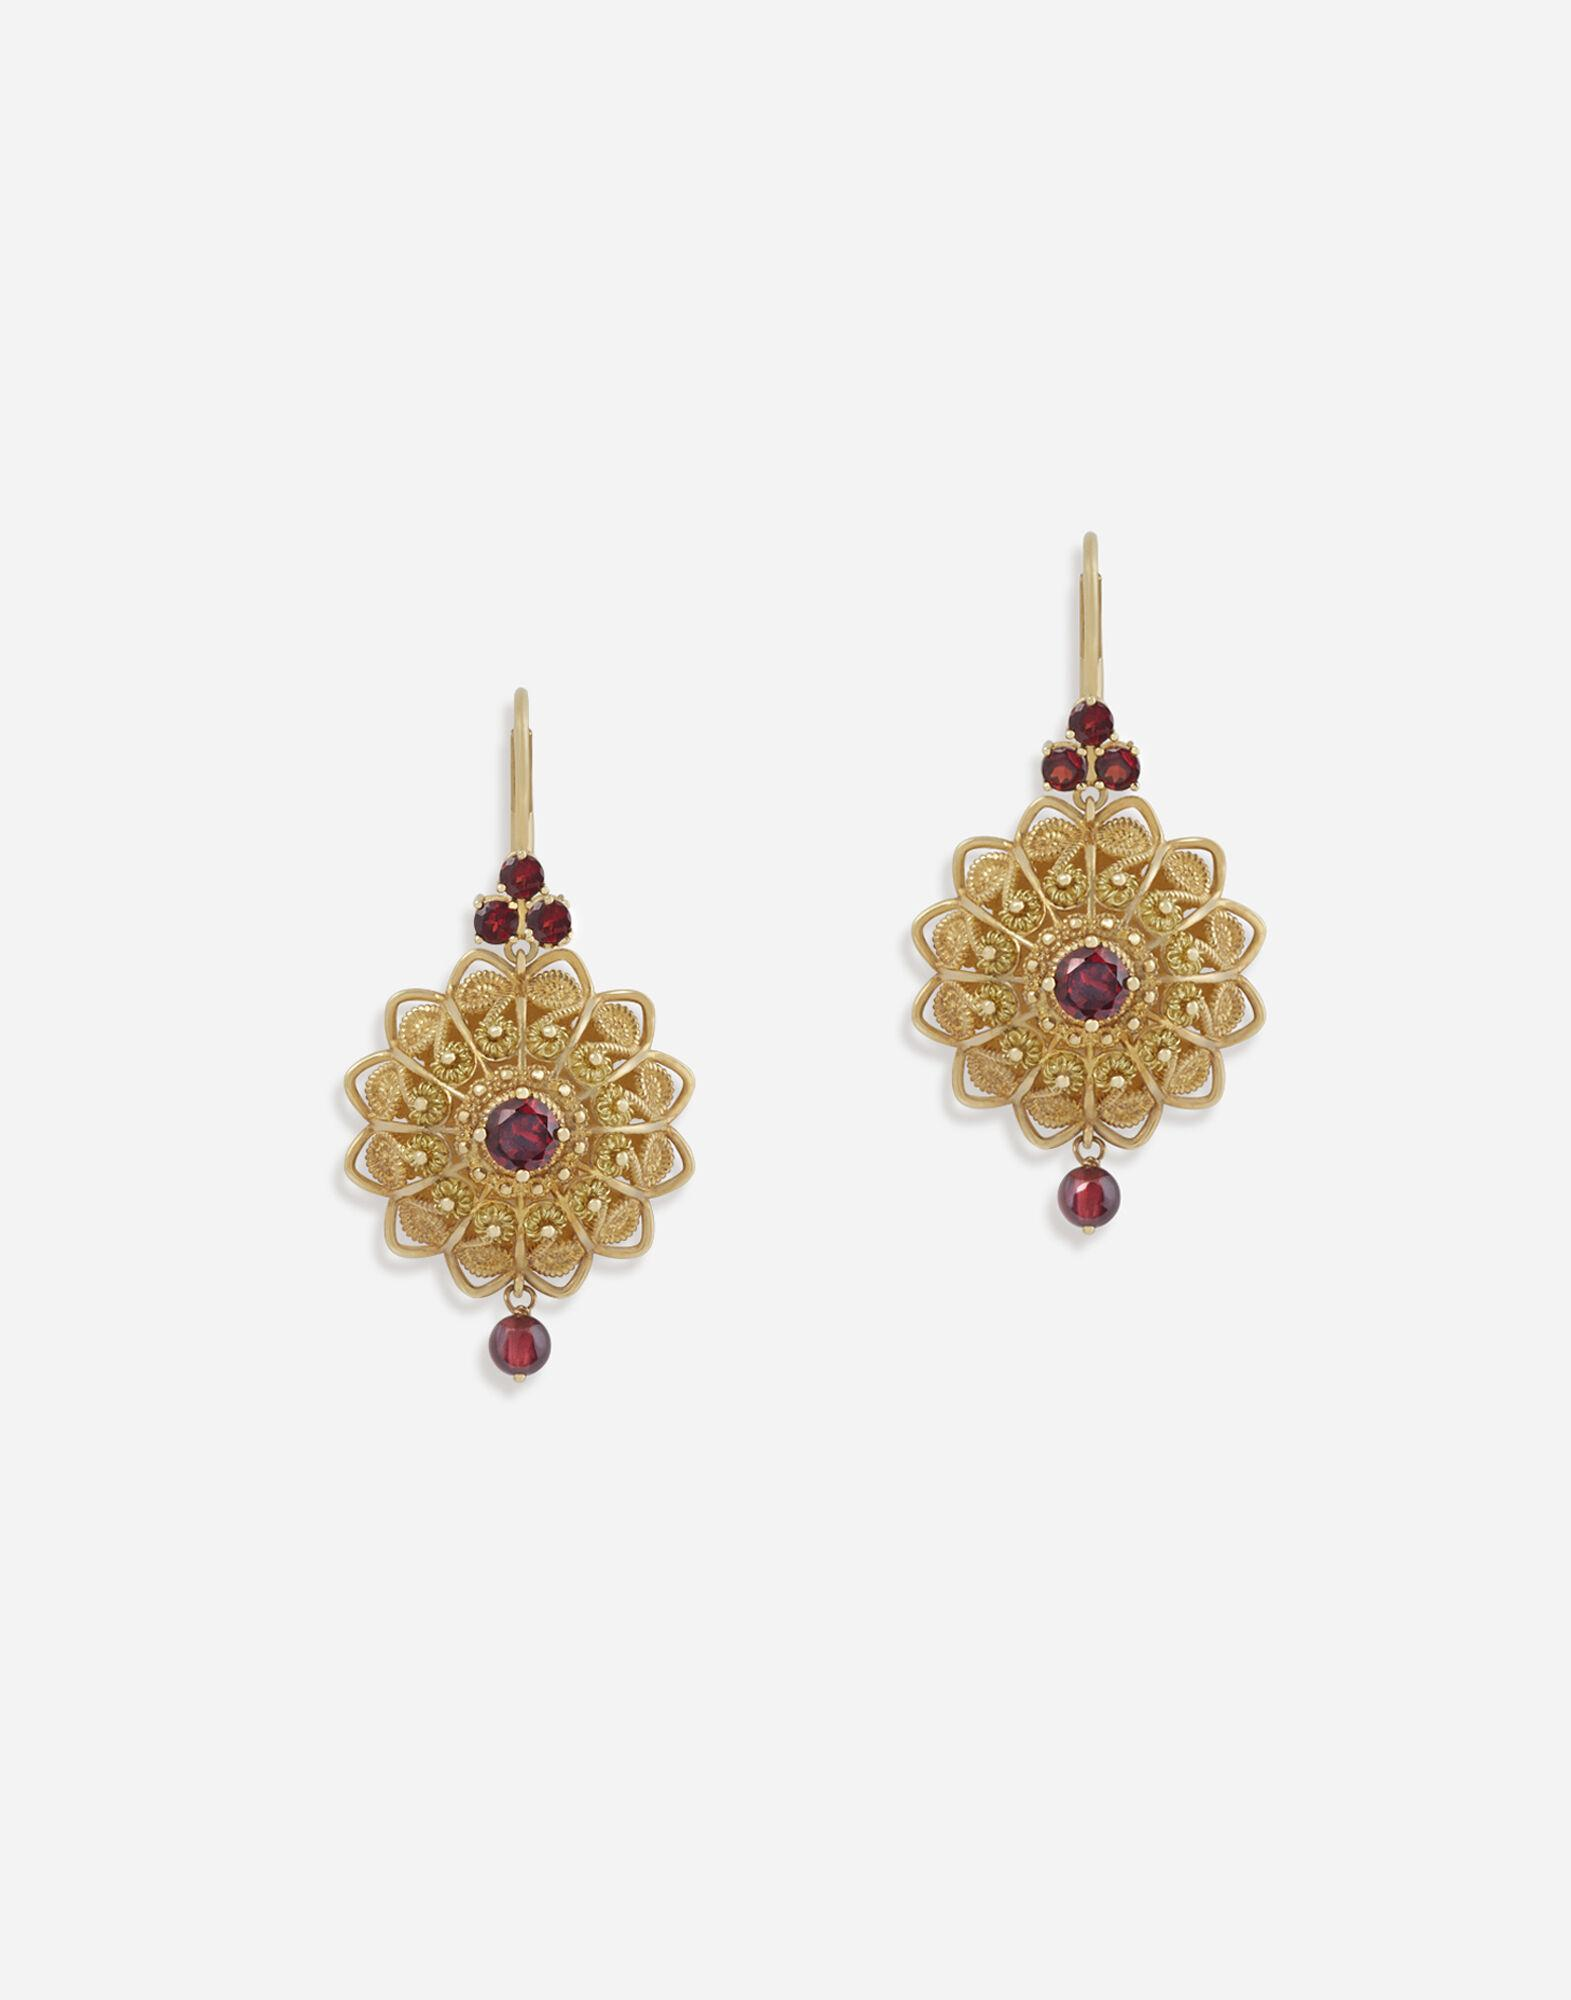 Pizzo earrings in yellow gold and rhodolite garnets